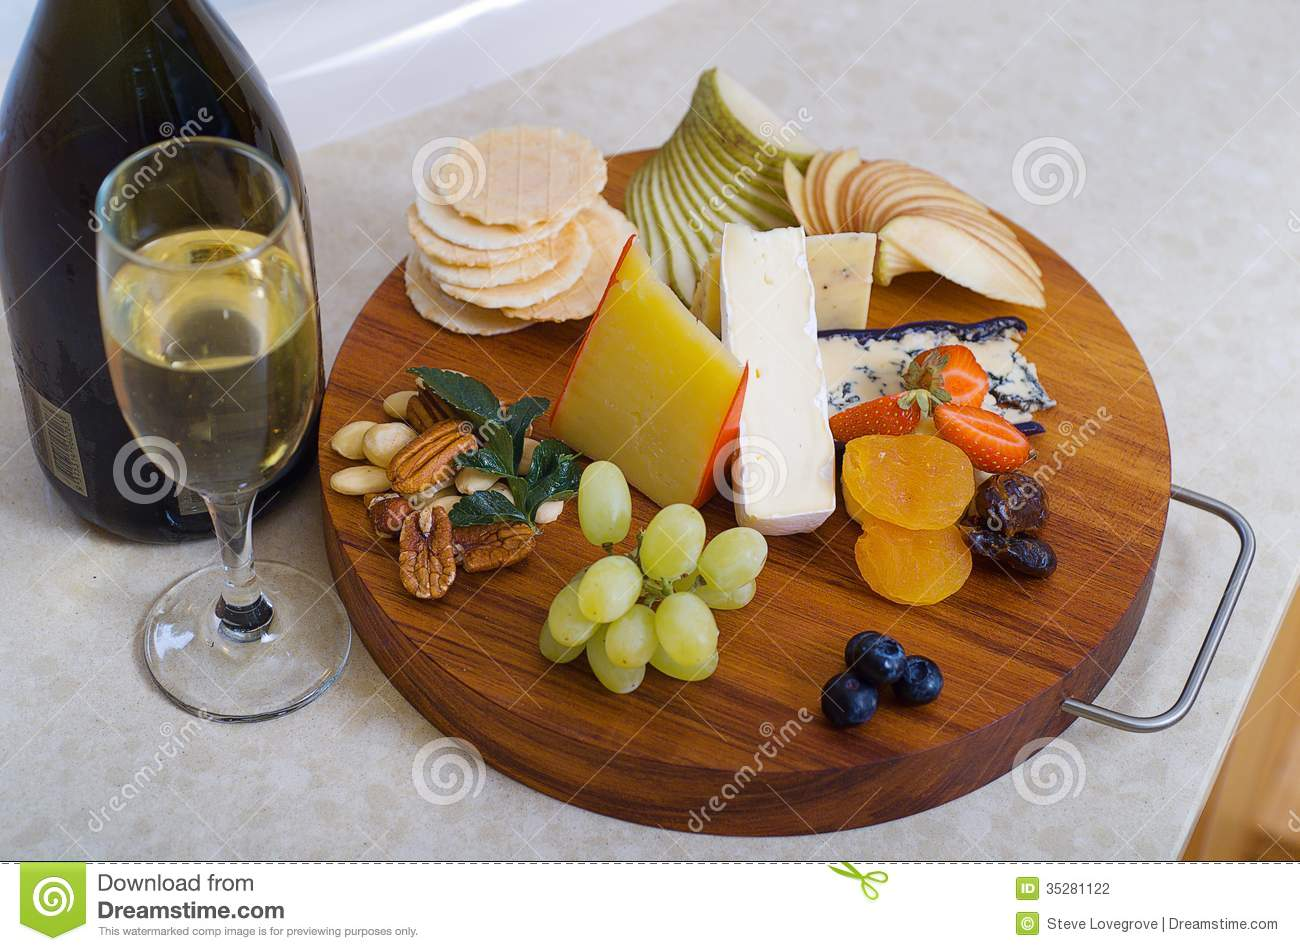 Cheese and Fruit Platter. Grapes walnut. & Cheese and Fruit Platter stock photo. Image of grapes - 35281122